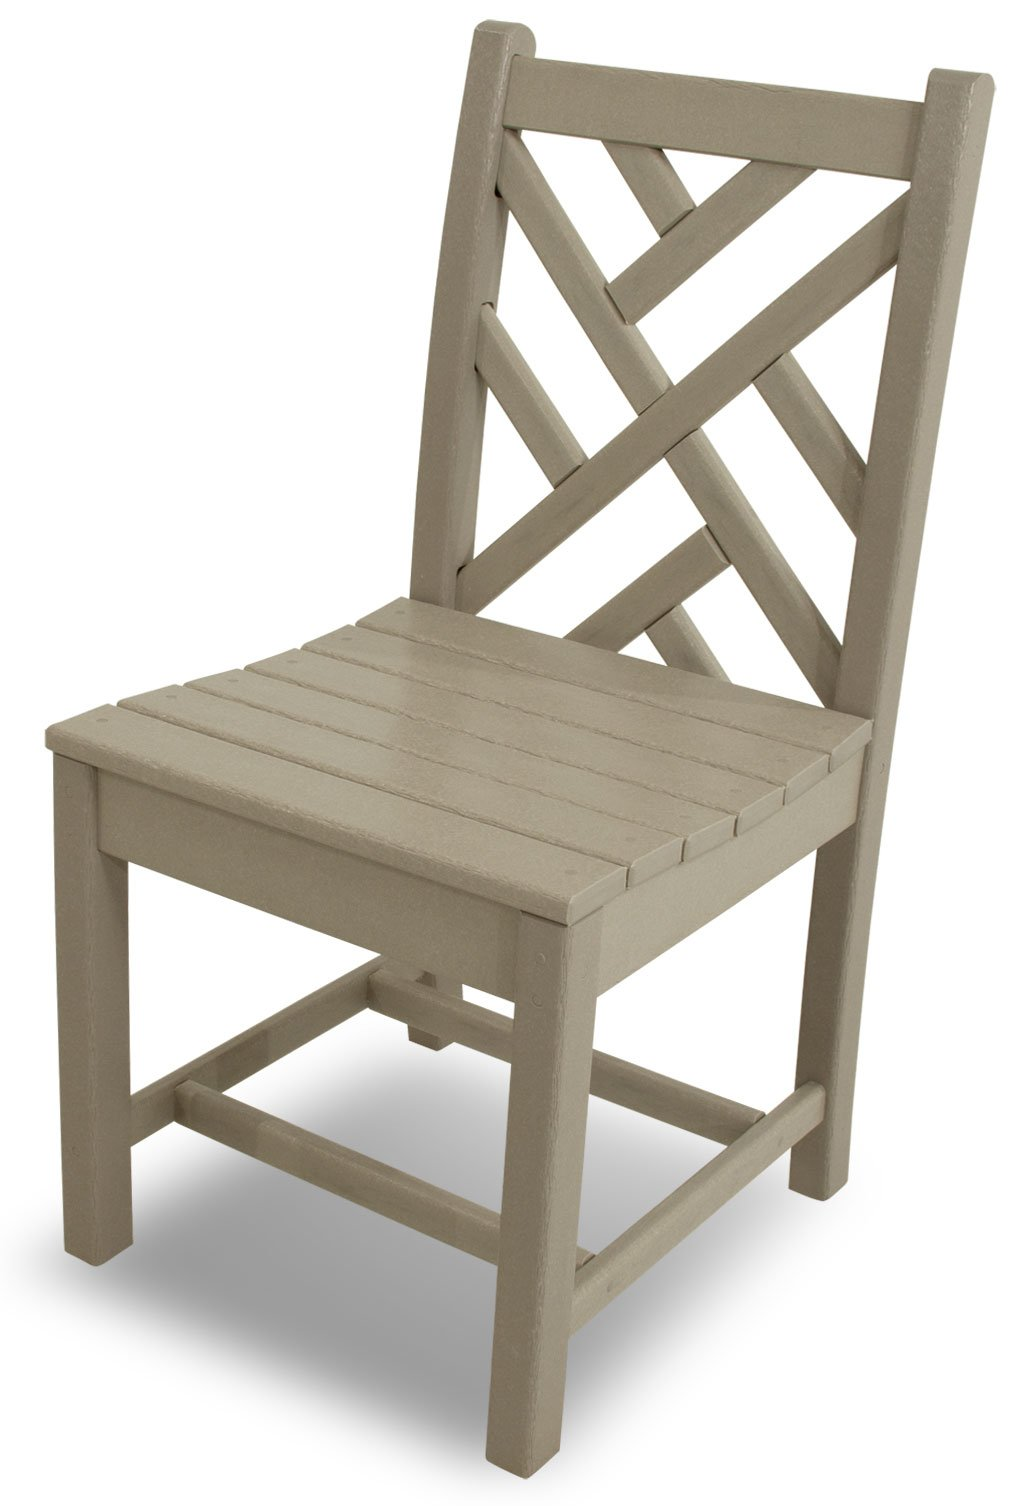 POLYWOOD CDD100SA Chippendale Dining Side Chair, Sand - Pair this elegant Chippendale dining side chair with one of the POLYWOOD traditional dining table;  is made with fade-resistant POLYWOOD recycled lumber POLYWOOD recycled HDPE lumber has the look of painted wood without the upkeep real wood requires; requires no painting, staining, or waterproofing Heavy-duty construction withstands nature's elements; will not splinter, crack, chip, peel or rot and is resistant to stains, insects, fungi, and salt spray - patio-furniture, patio-chairs, patio - 61aeS1wENSL -